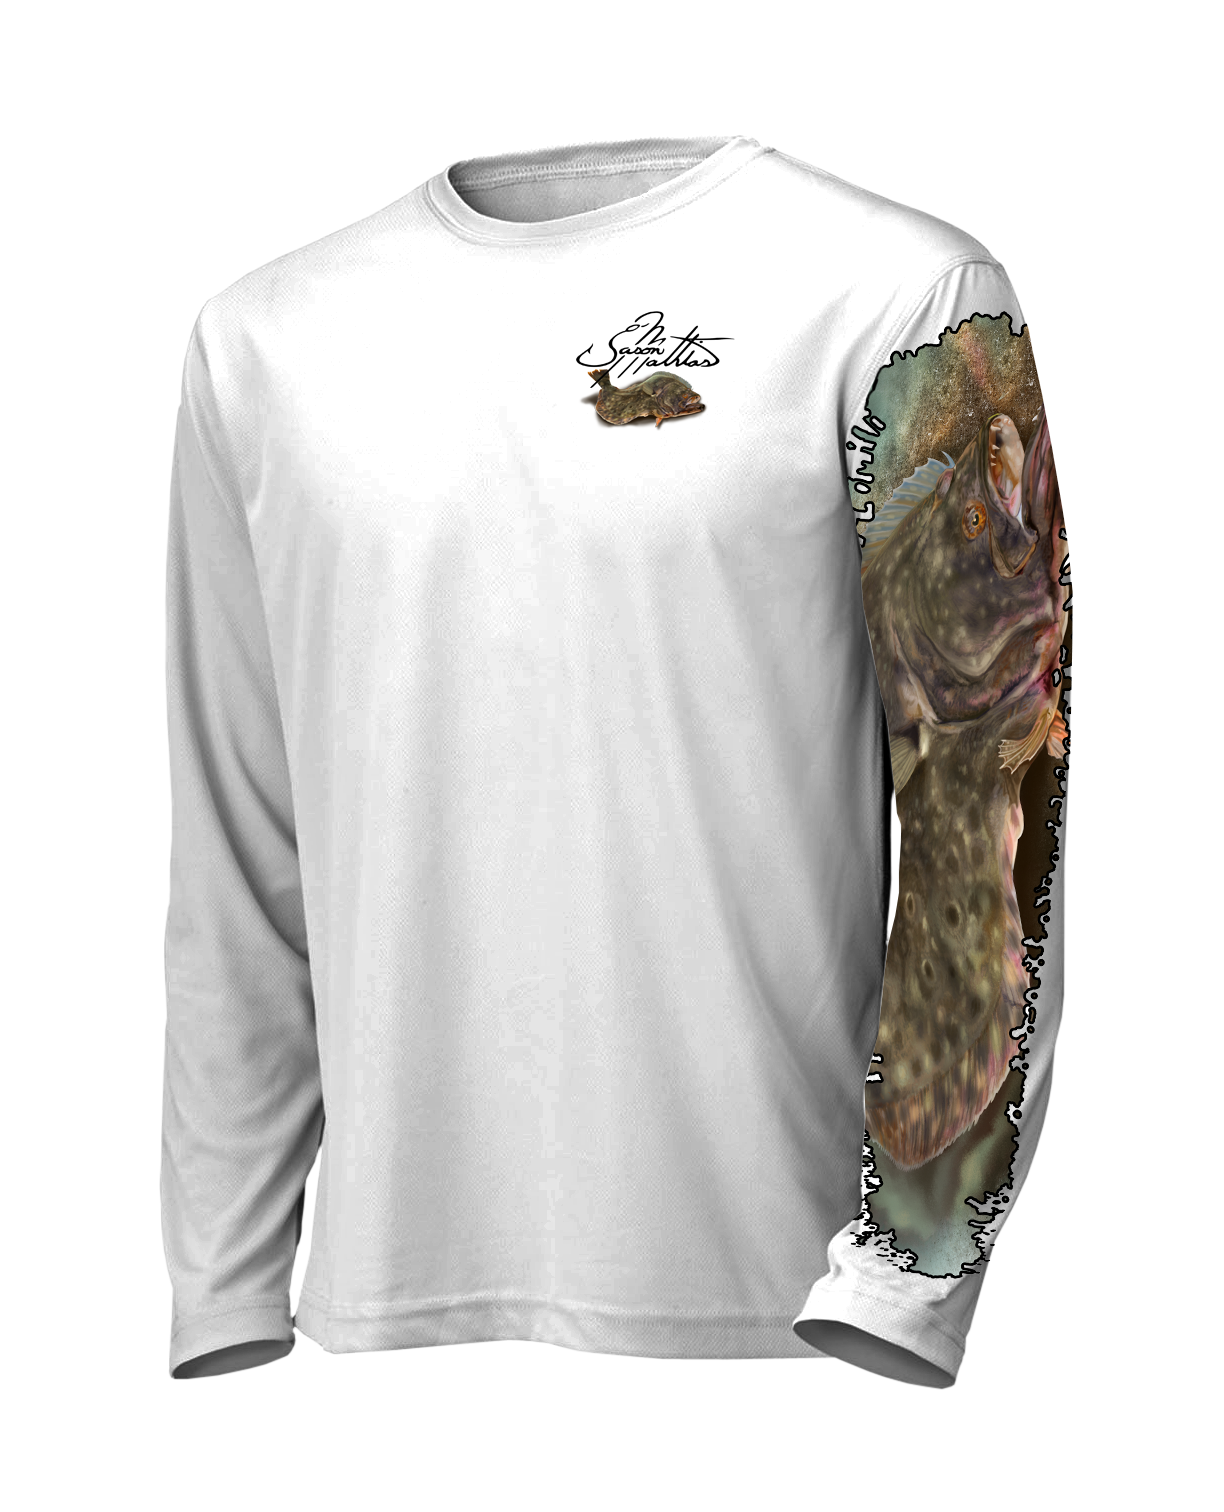 jason-mathias-shirt-line-front-white-flounder-fluke-fishing-apparel-gear-outdoor-solar-sun-high-performance-inshore-gamefish-art-sportfish-art-designs.png